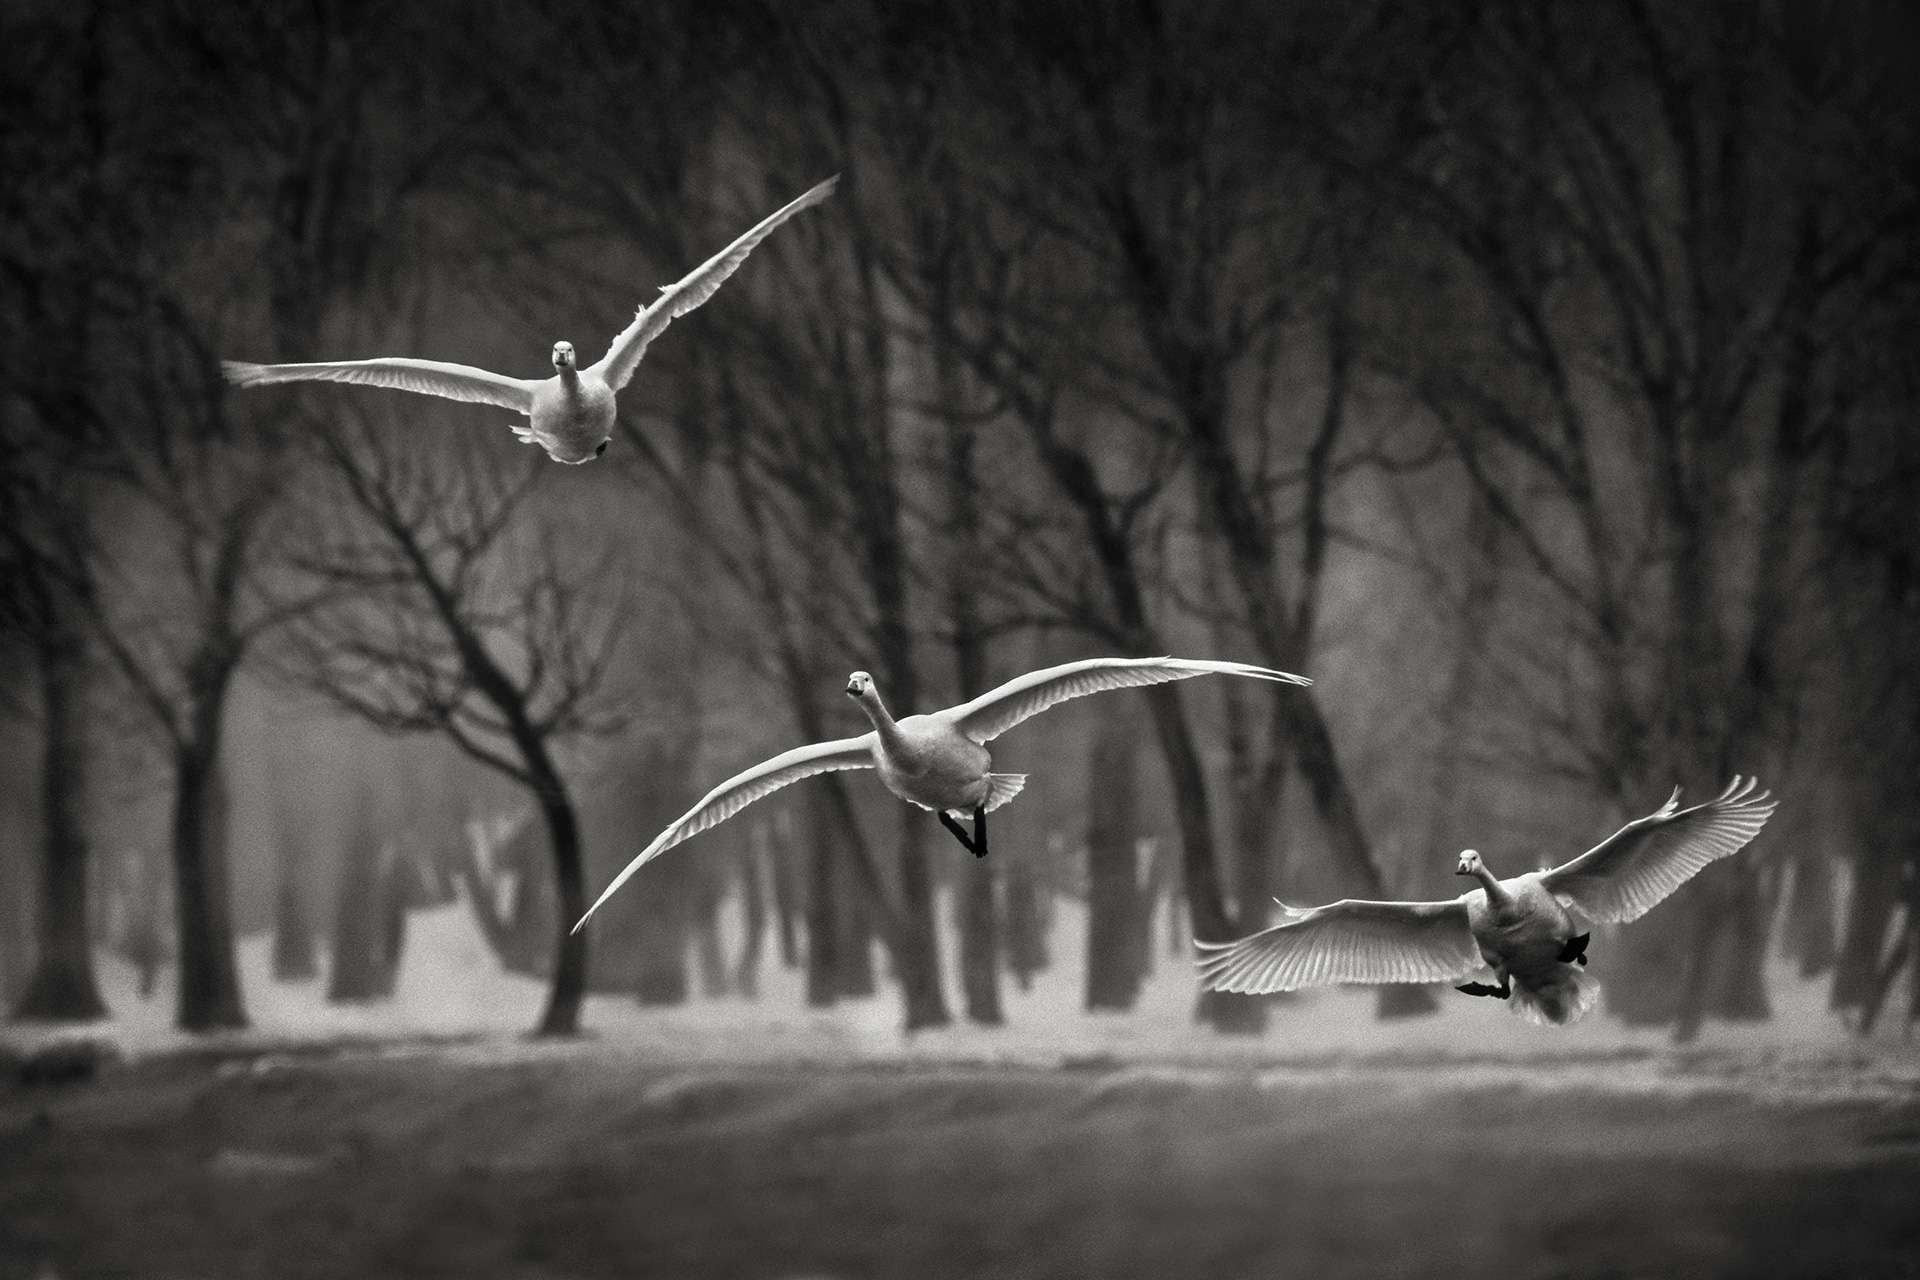 Gilles Martin's photograph : whooper swan from Japan, Struggle for life